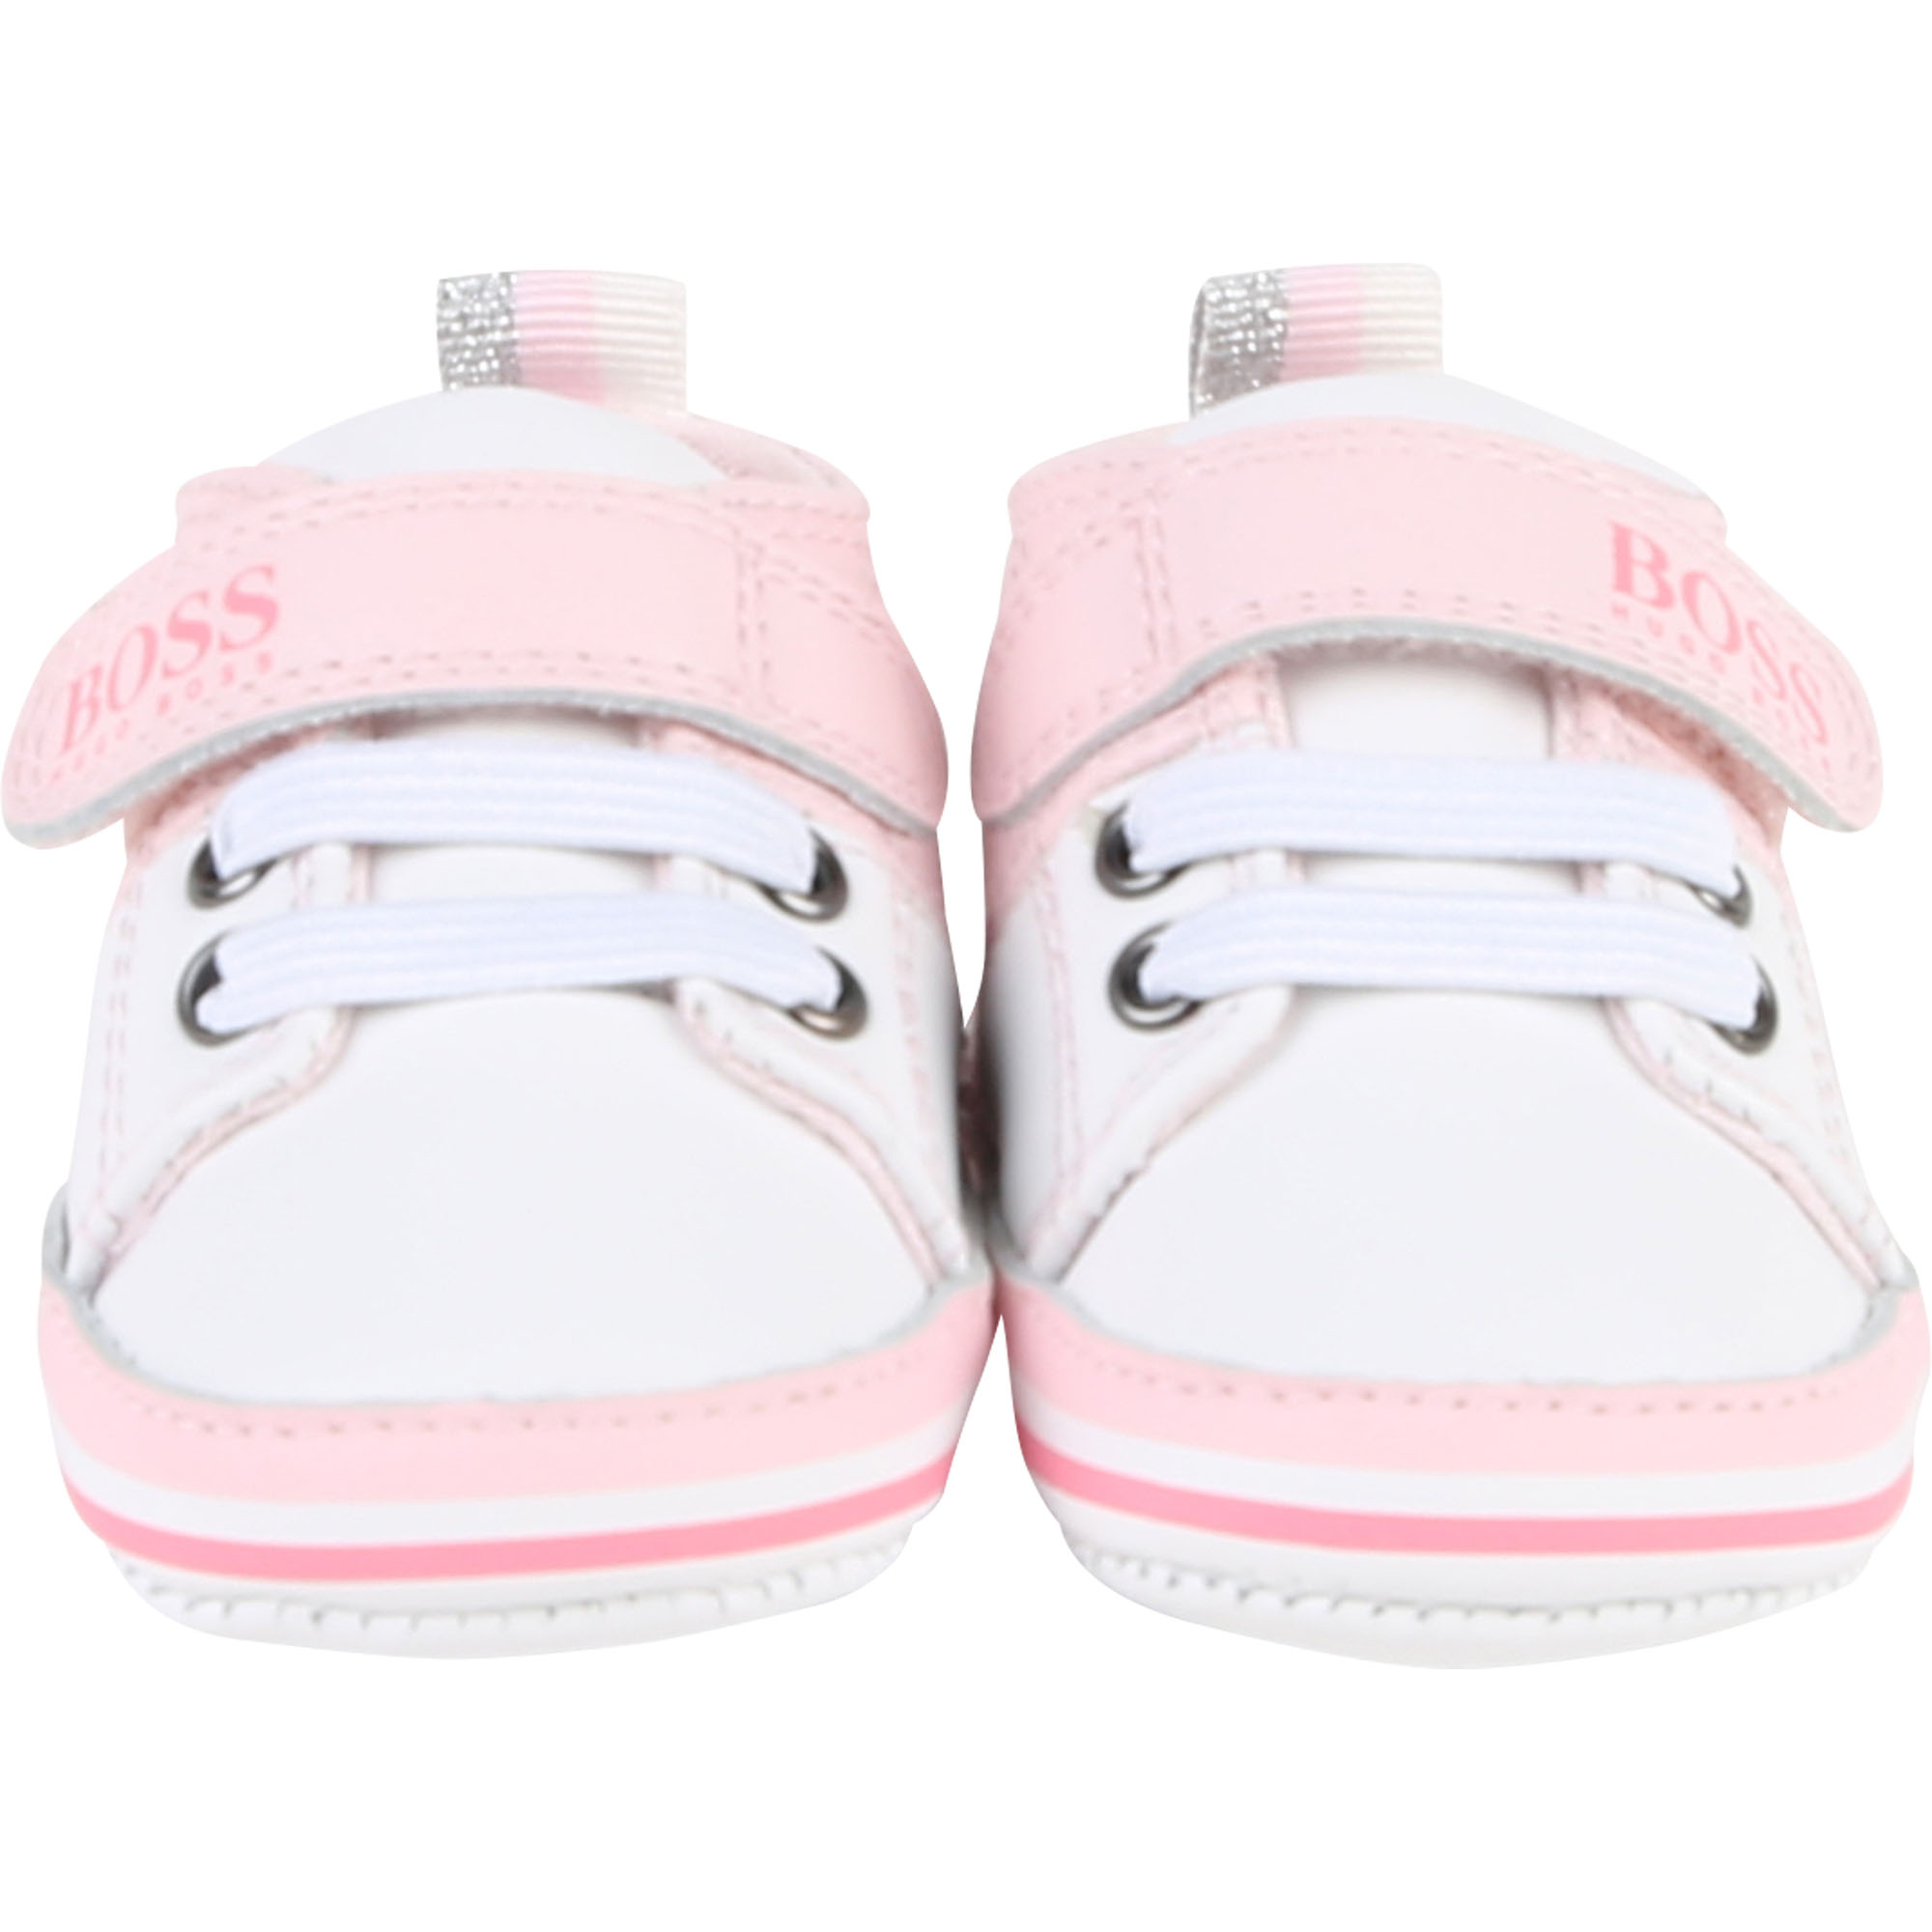 Hugo Boss baby sneaker of leather in rose-white